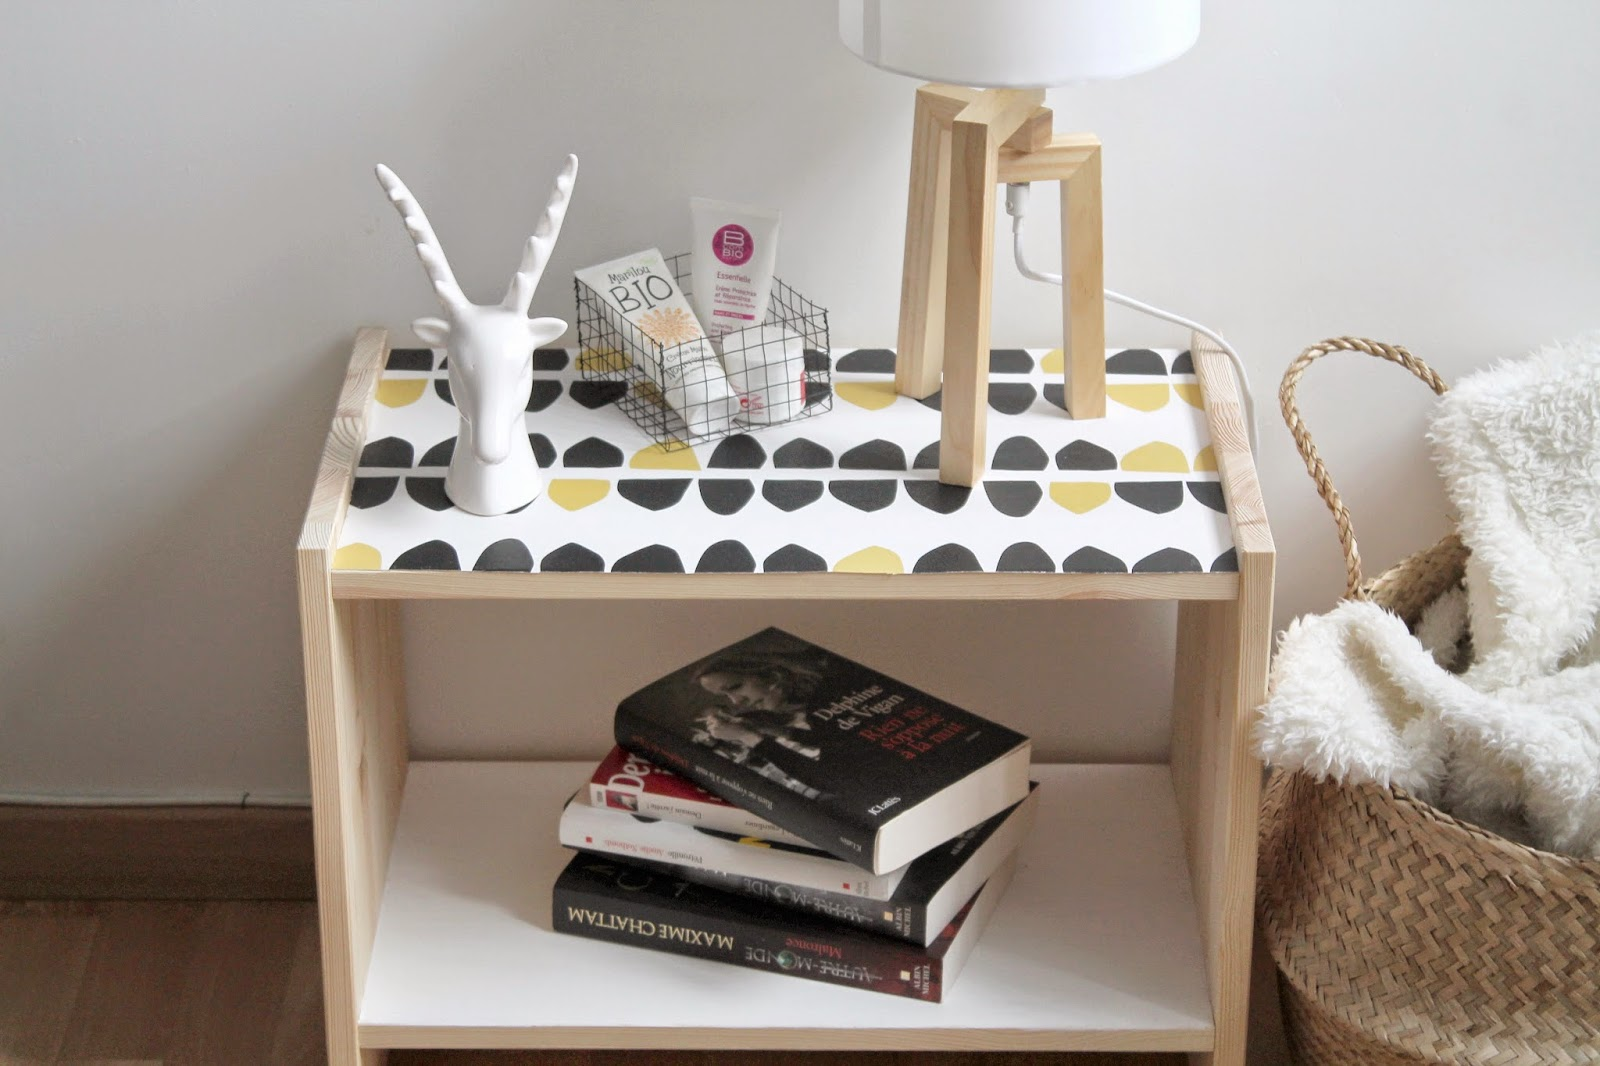 diy customiser la table de chevet rast le bazar d 39 alison blog mode lyon et autres. Black Bedroom Furniture Sets. Home Design Ideas